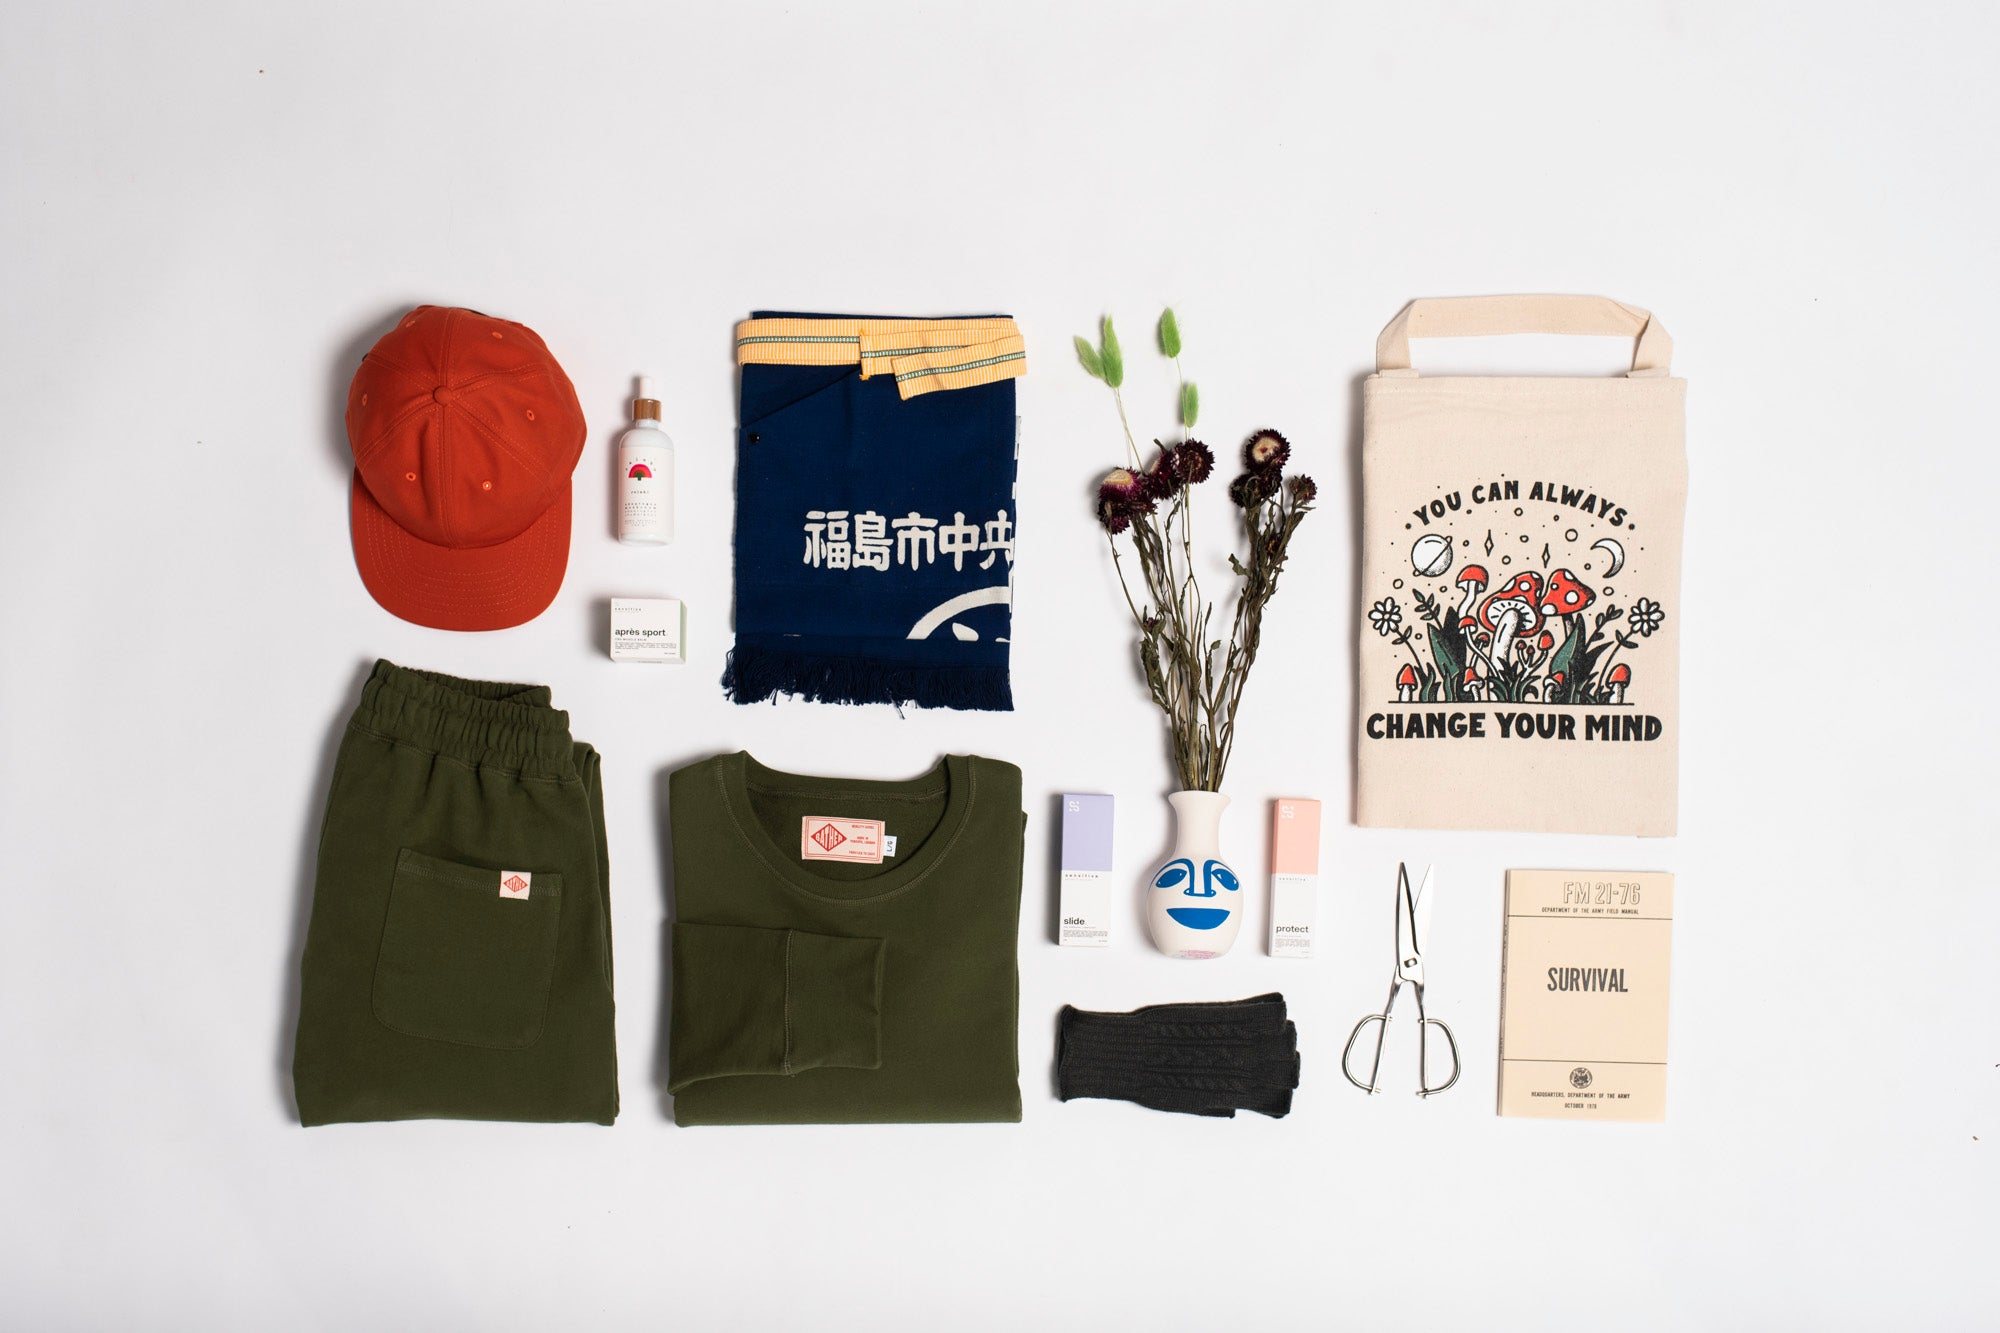 Flat lay image of our Home Horticulturist gift kit from our gift guide